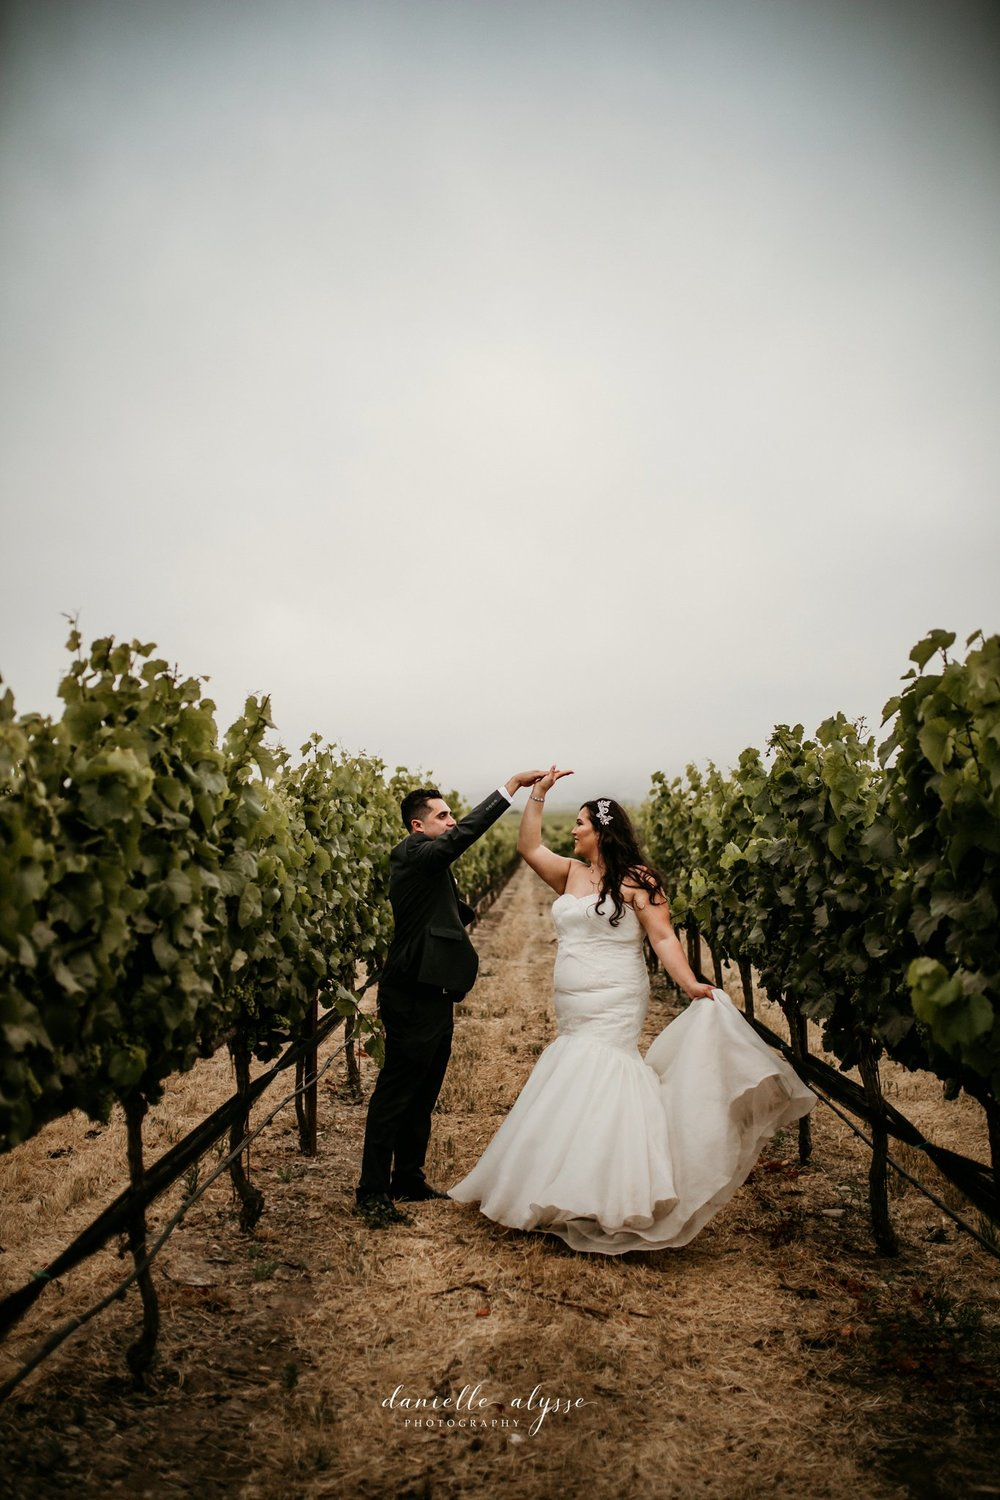 180630_wedding_lily_ryan_mission_soledad_california_danielle_alysse_photography_blog_1171_WEB.jpg